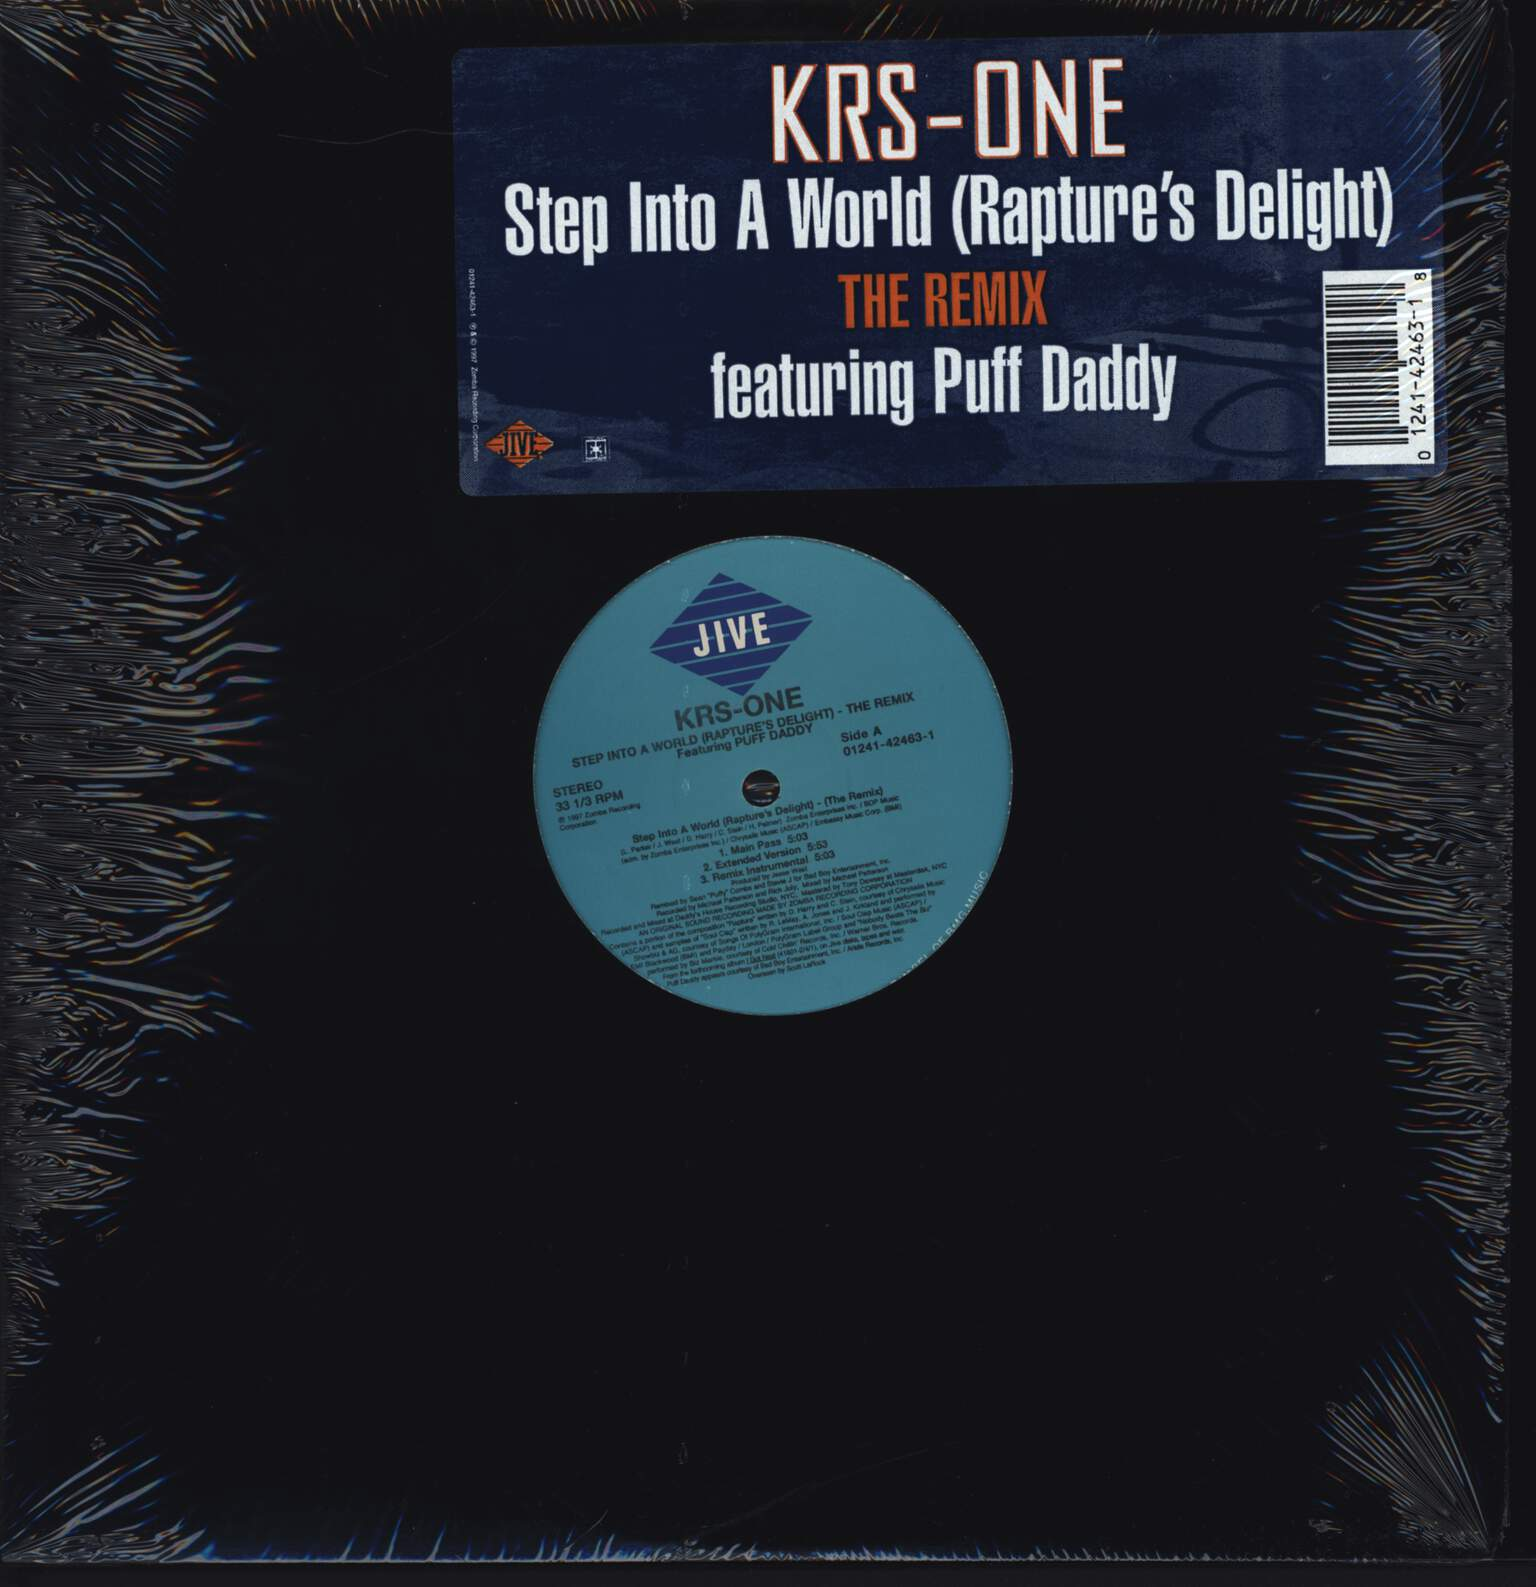 "Krs-One: Step Into A World (Rapture's Delight) (The Remix), 12"" Maxi Single (Vinyl)"